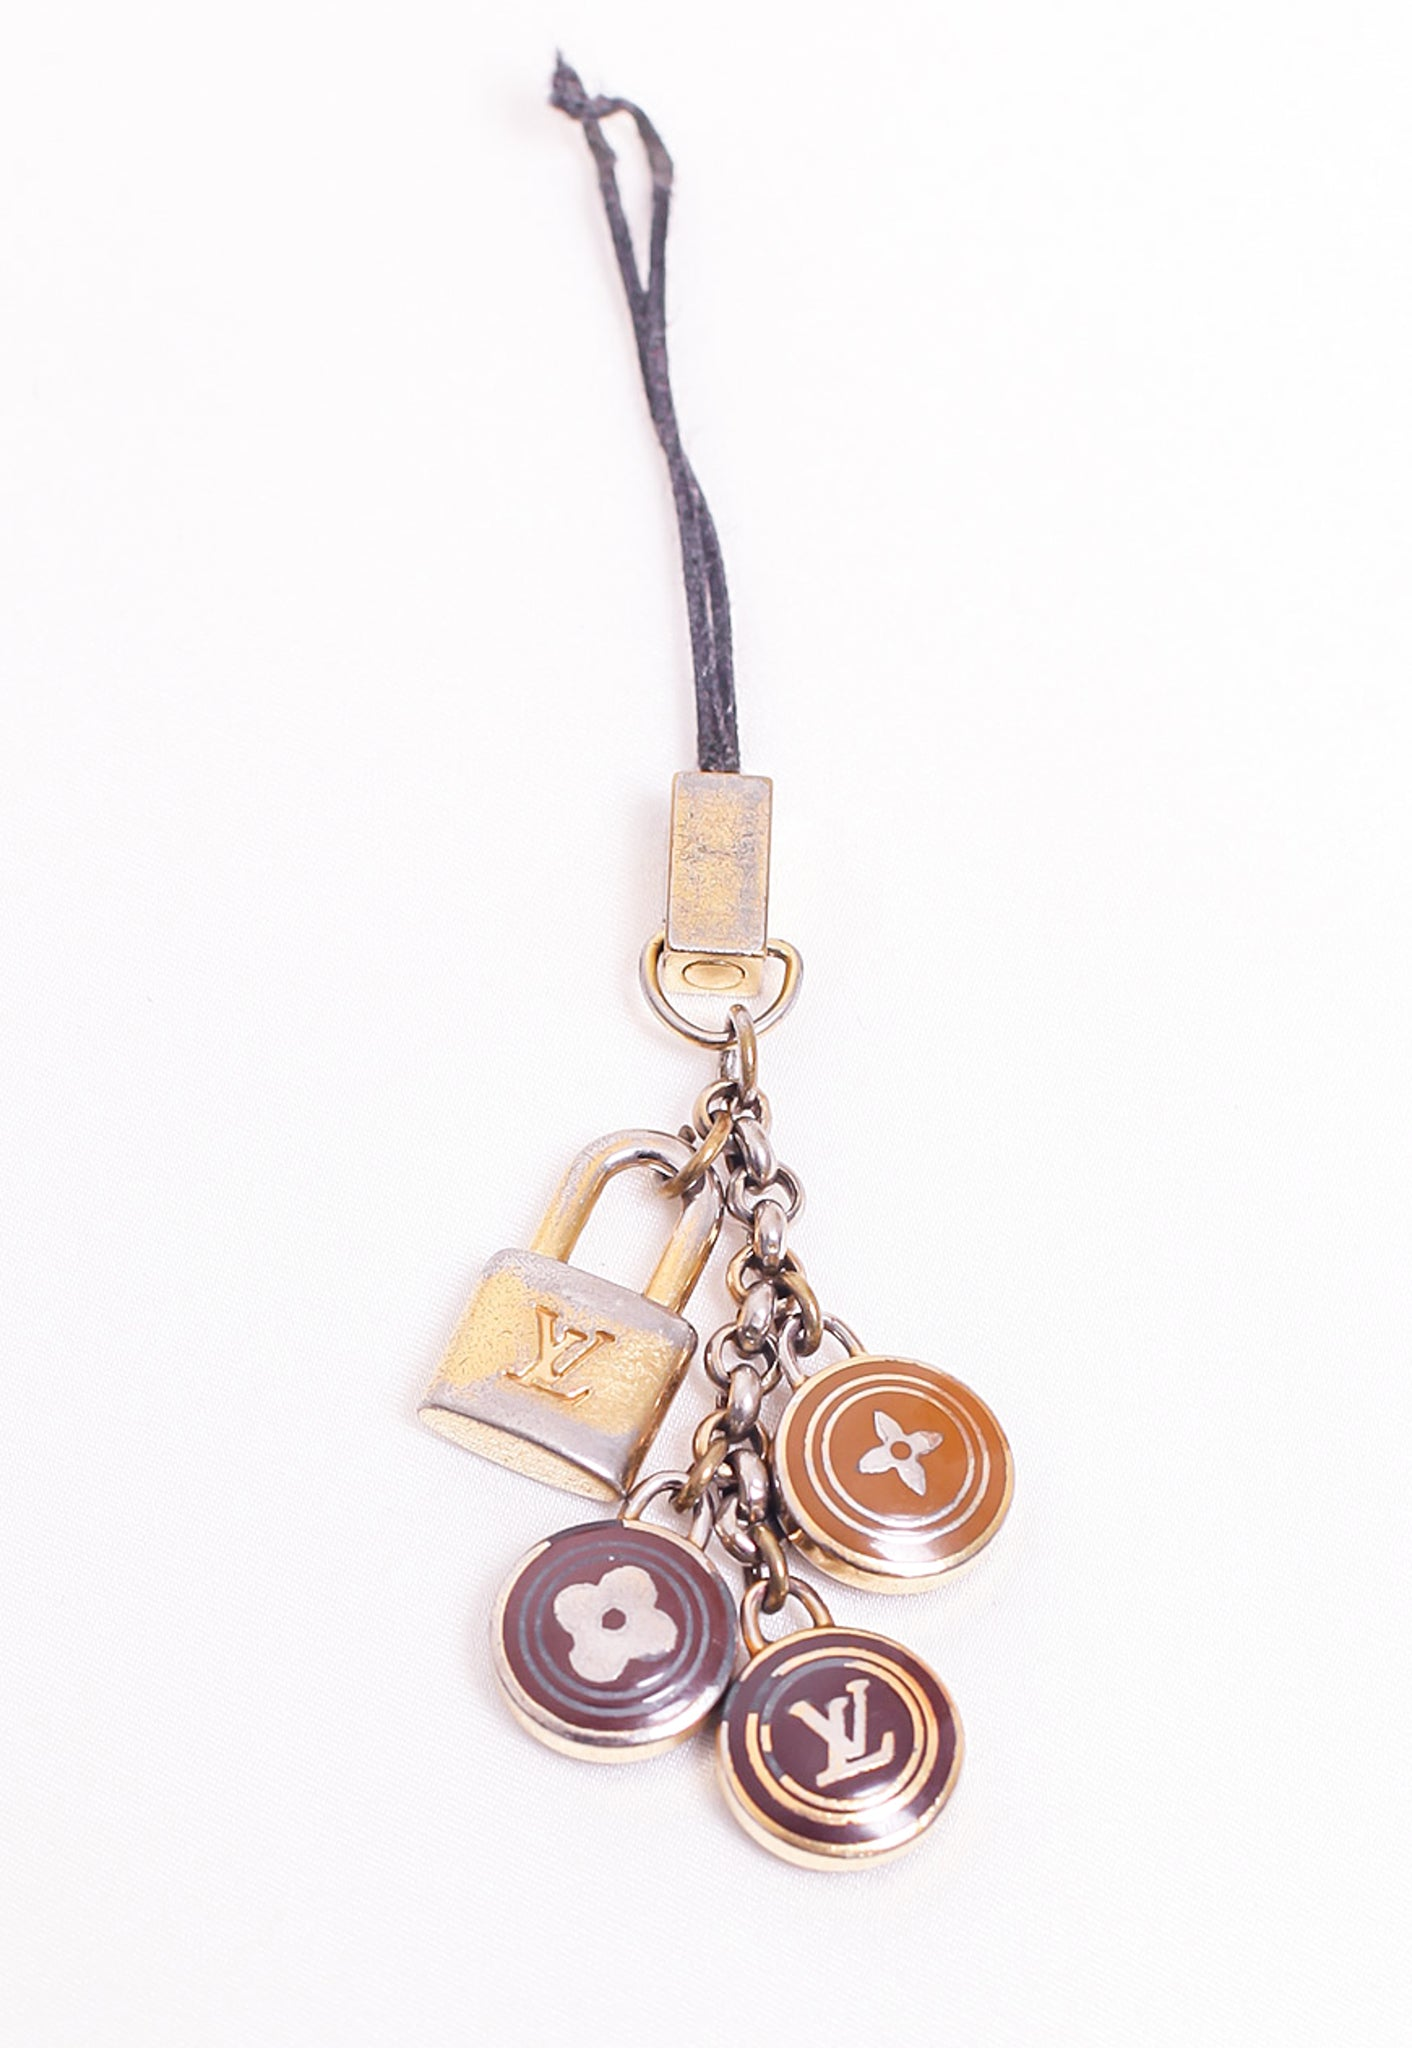 Reworked Louis Vuitton Brown LV Pendant Necklace